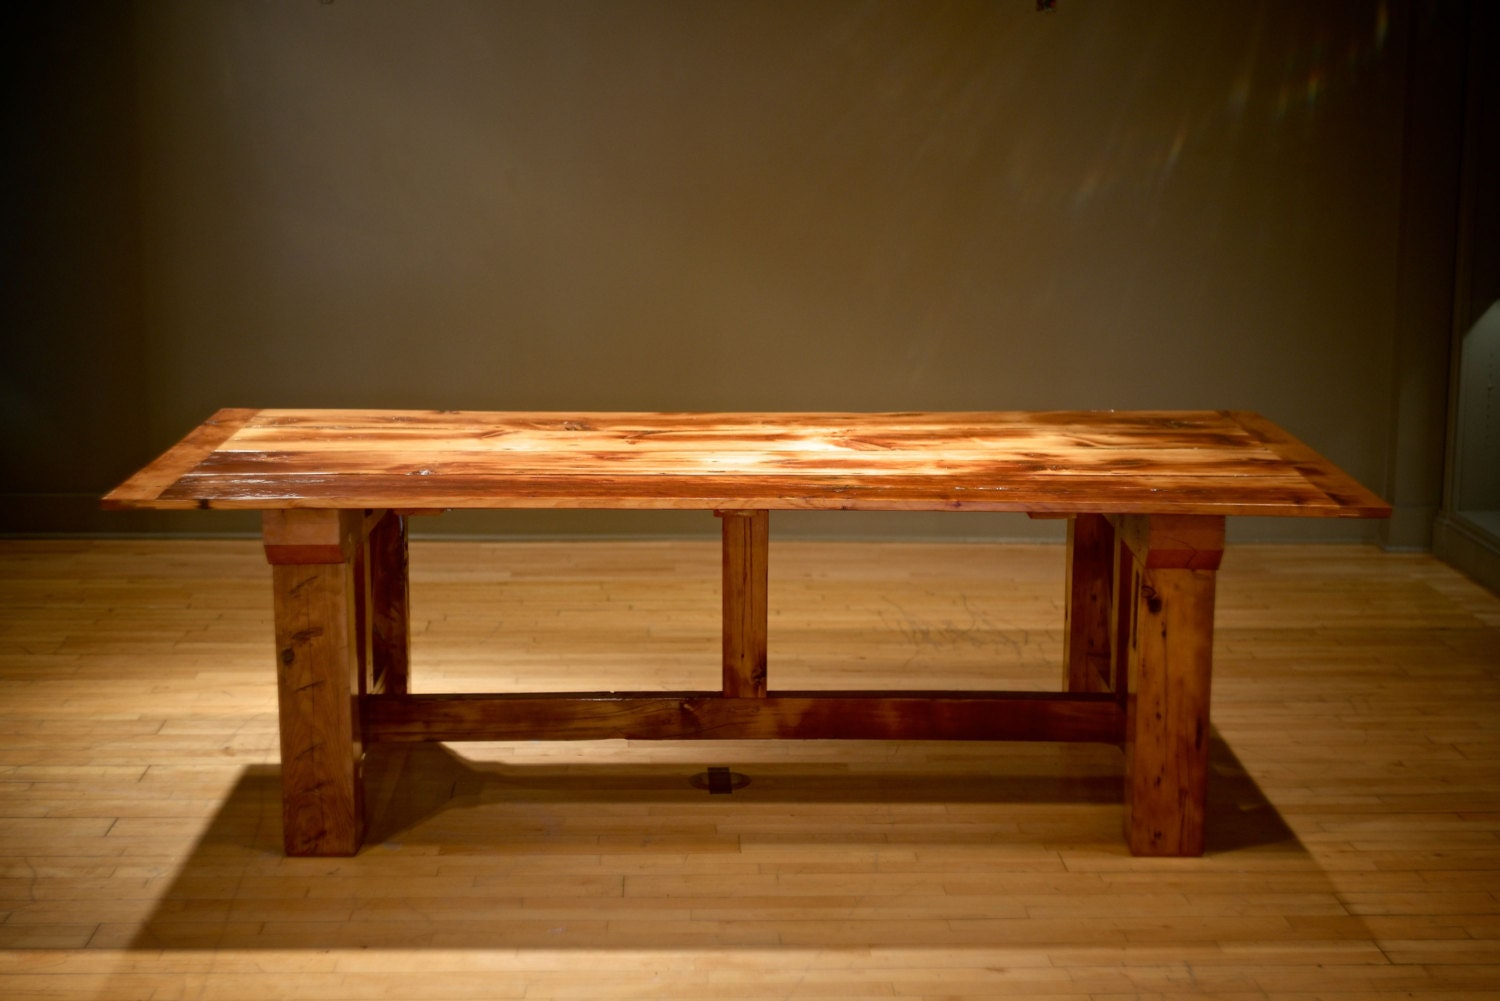 Rustic Farm Table Made Of Reclaimed Wood Dining Table With